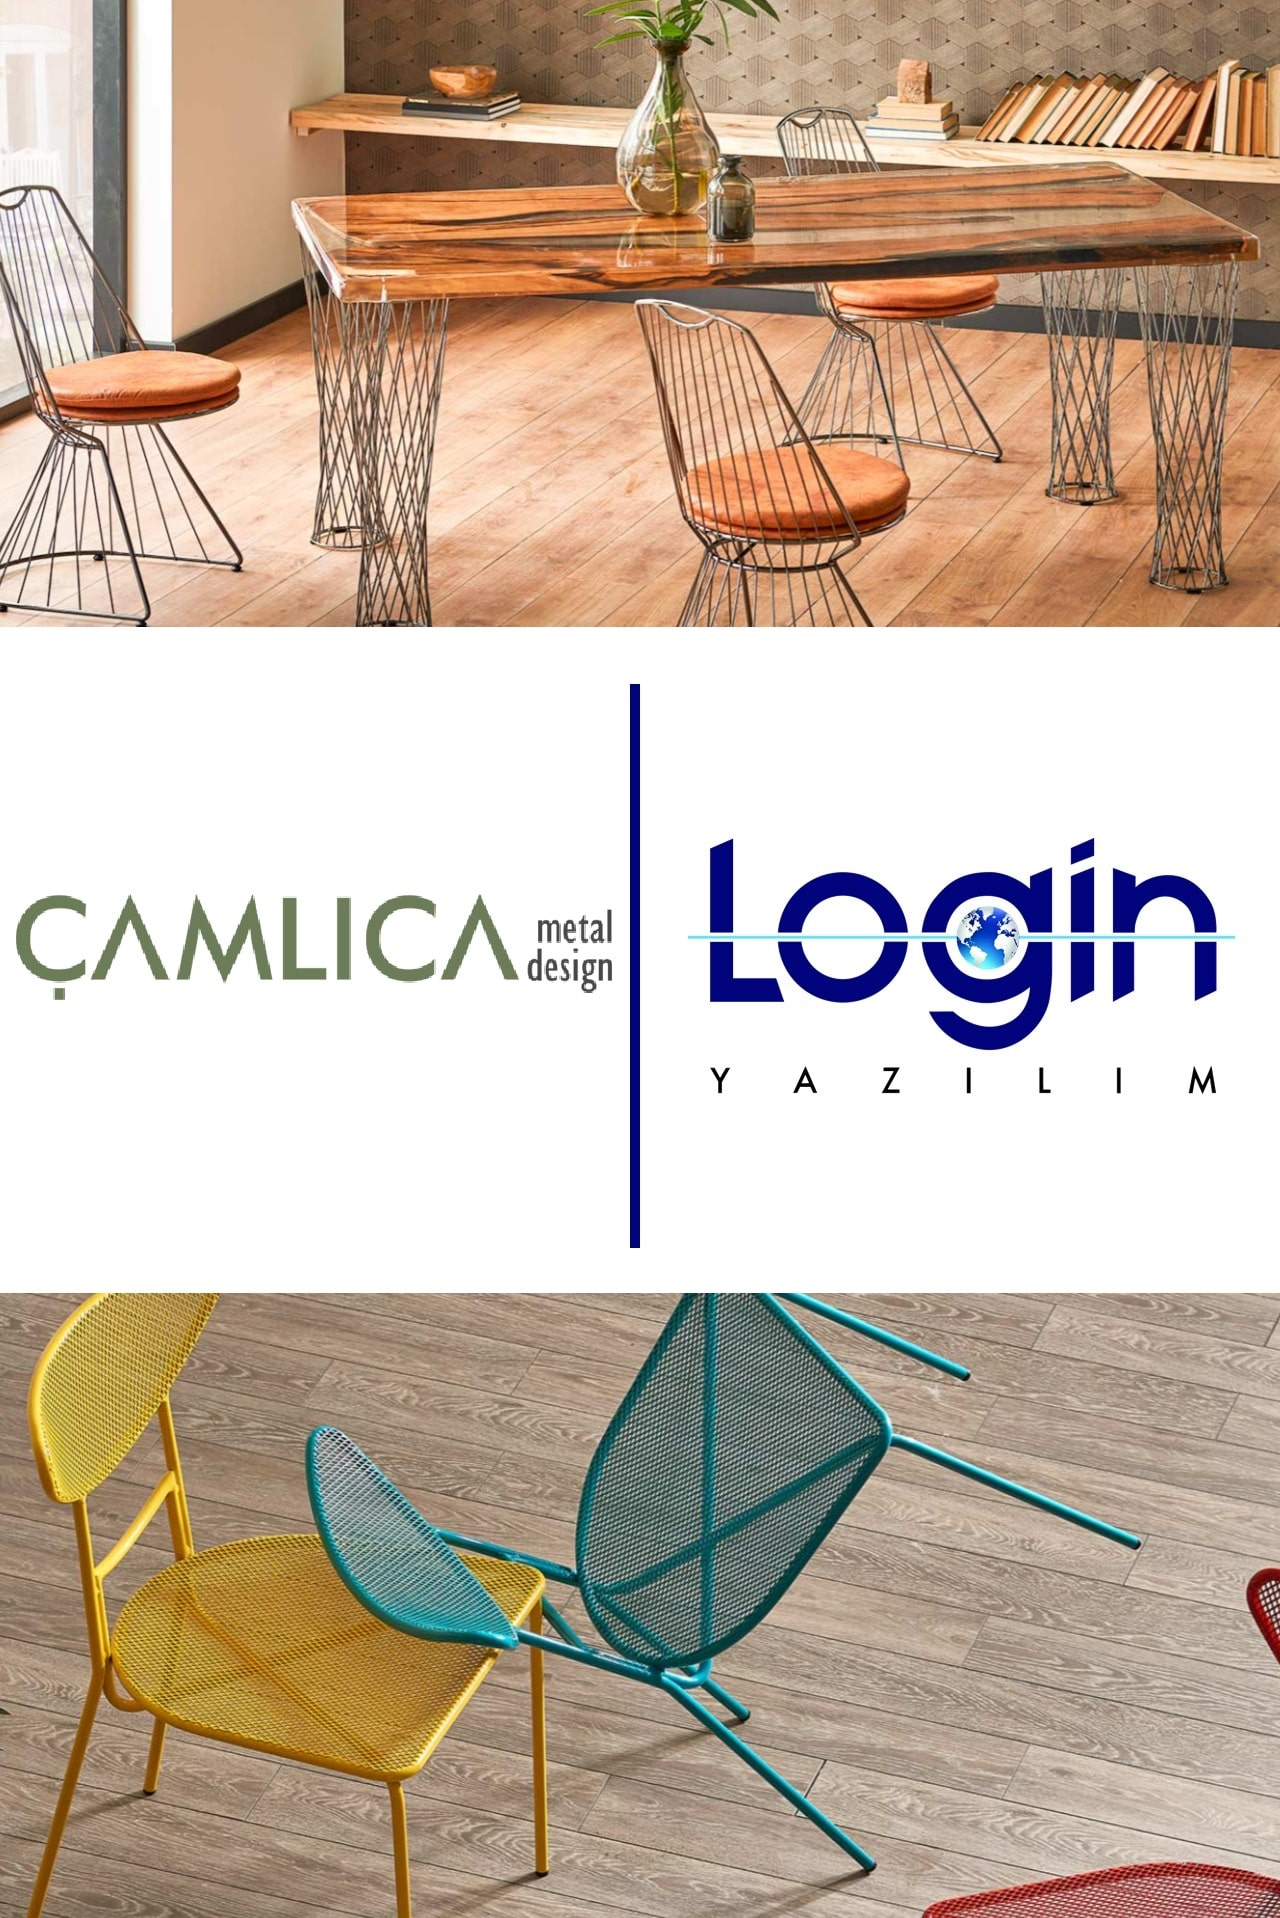 Çamlıca Metal Design also preferred Login ERP